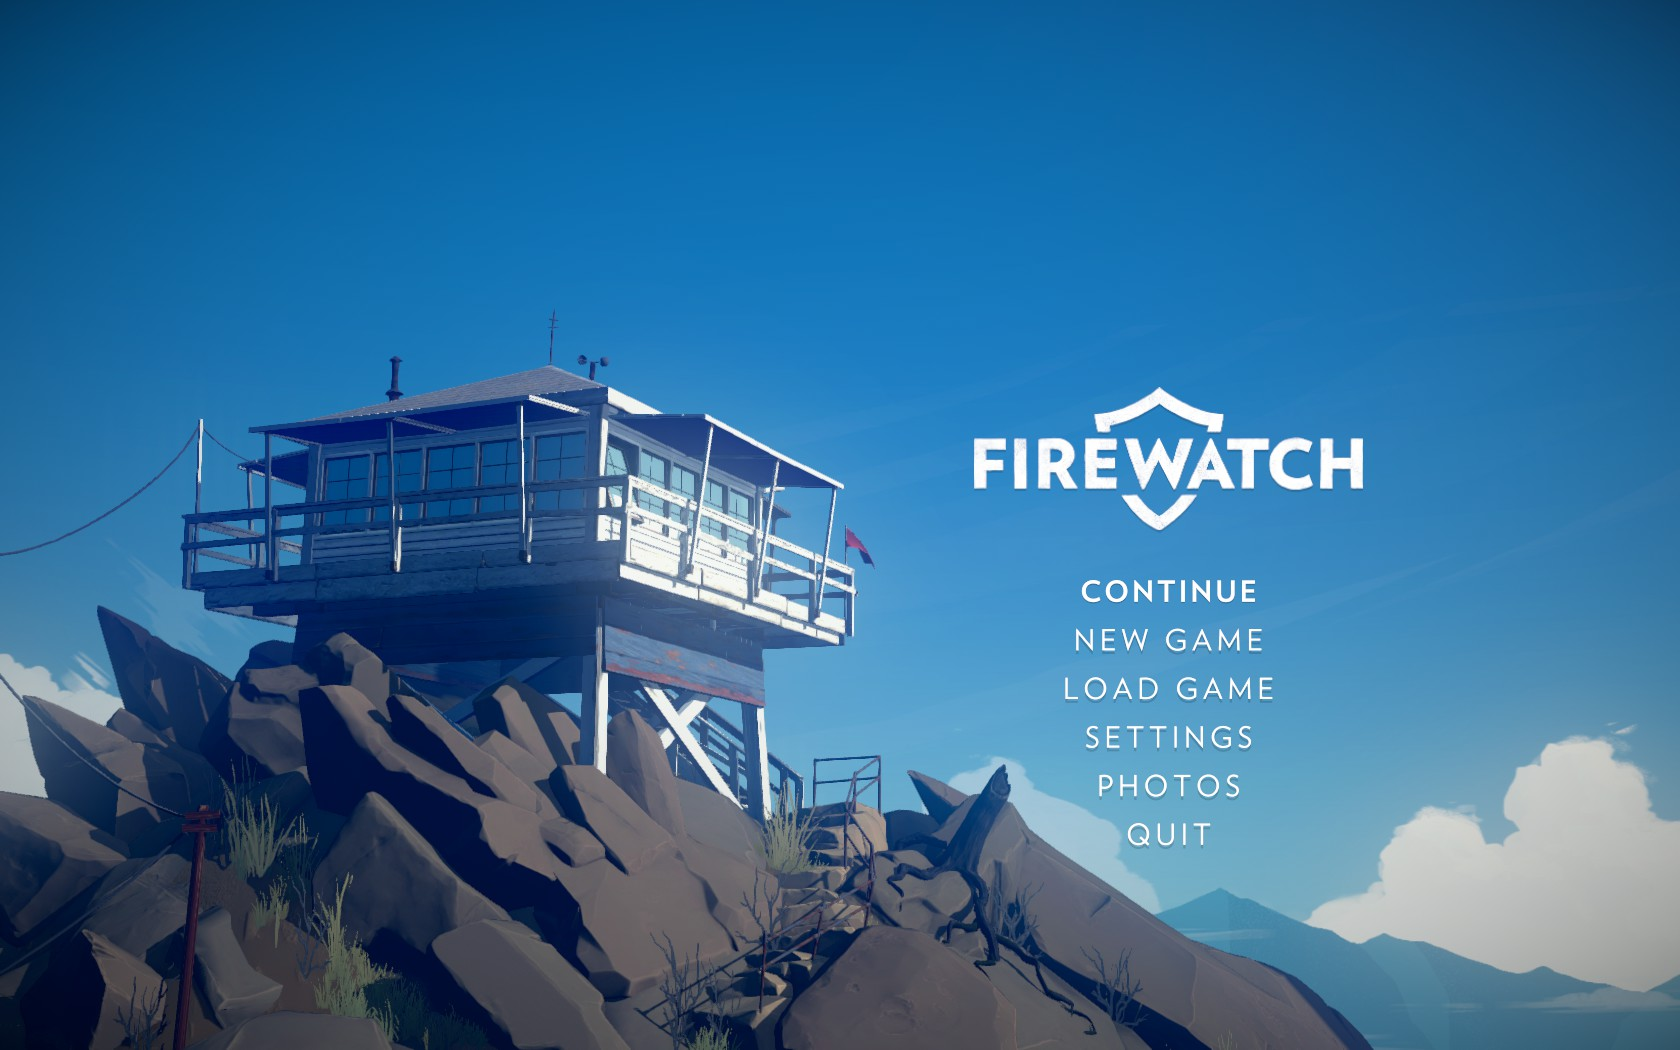 Firewatch - More of a... Controlled Burn